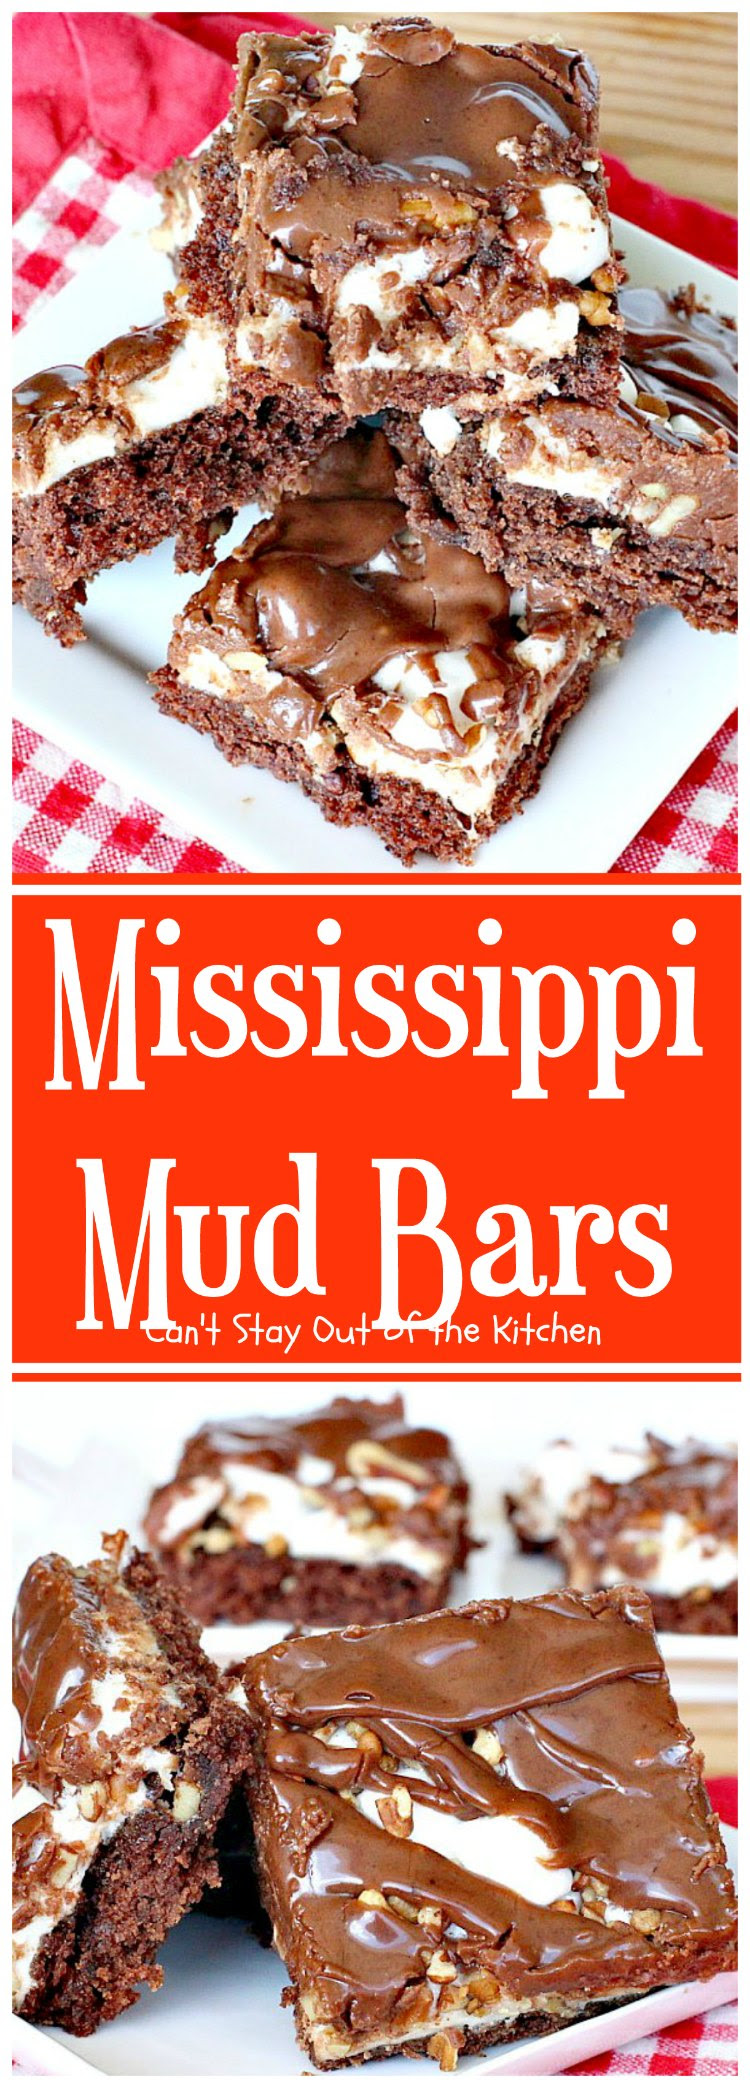 Mississippi Mud Bars Cant Stay Out of the Kitchen